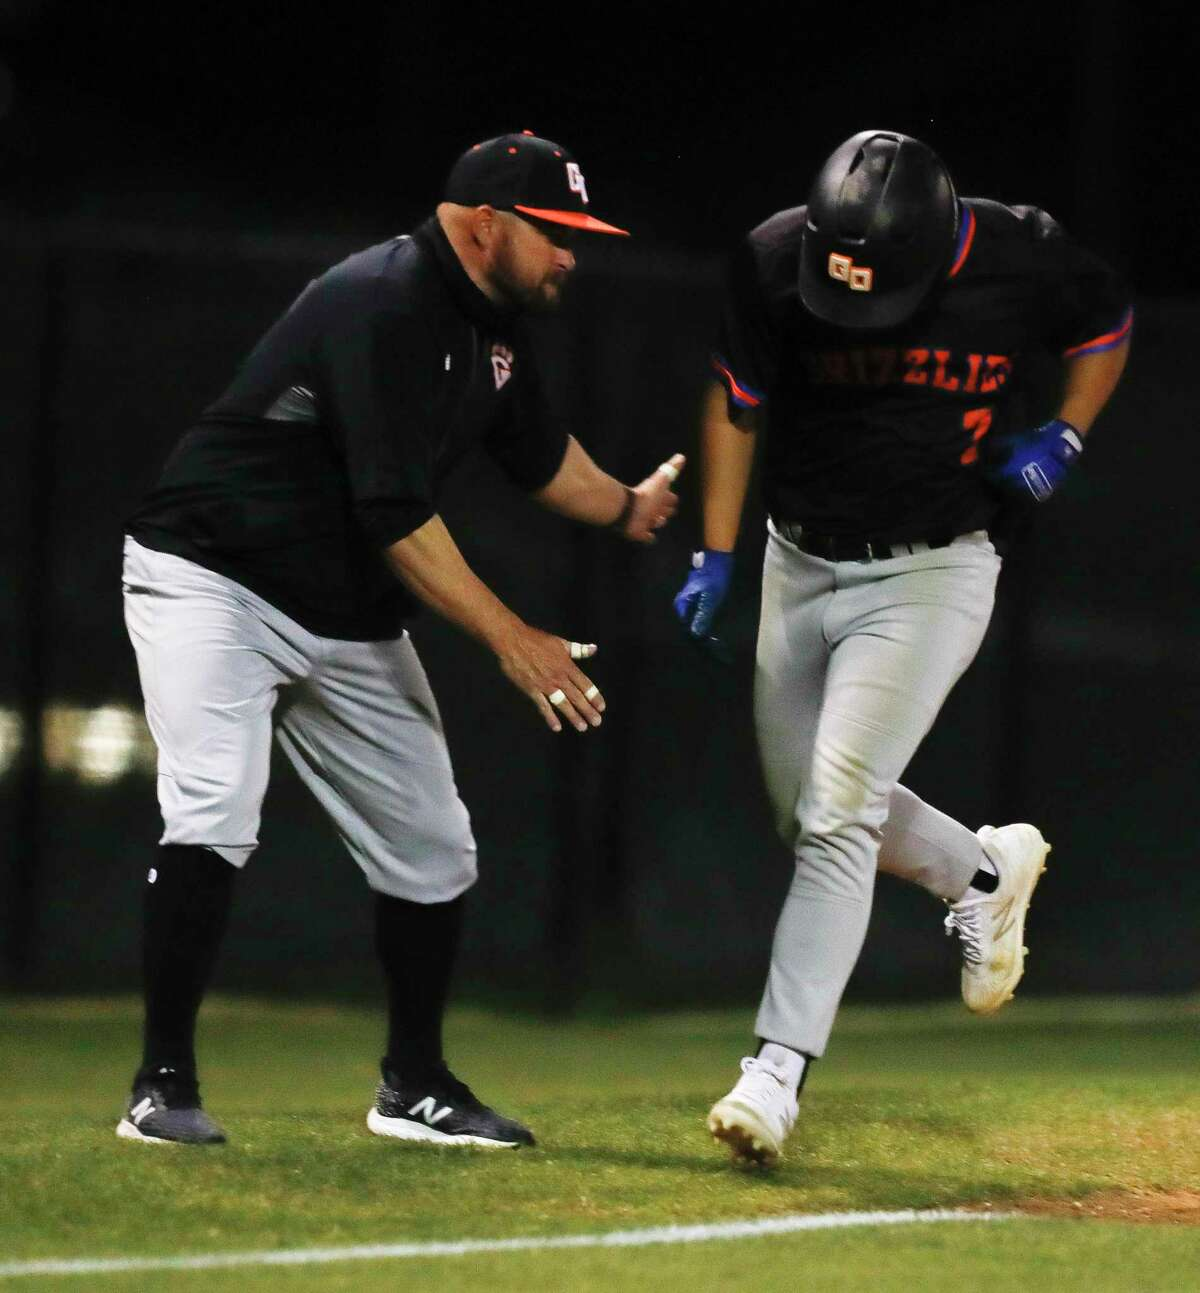 Grand Oaks' Antonio Sabala (7), shown here earlier this season with head coach Lous Ferrell, hit a walk-off two-run single Thursday as the Grizzlies defeated The Woodlands 6-5 in Game 1 of the Region II-6A quarterfinals at Humble High School.